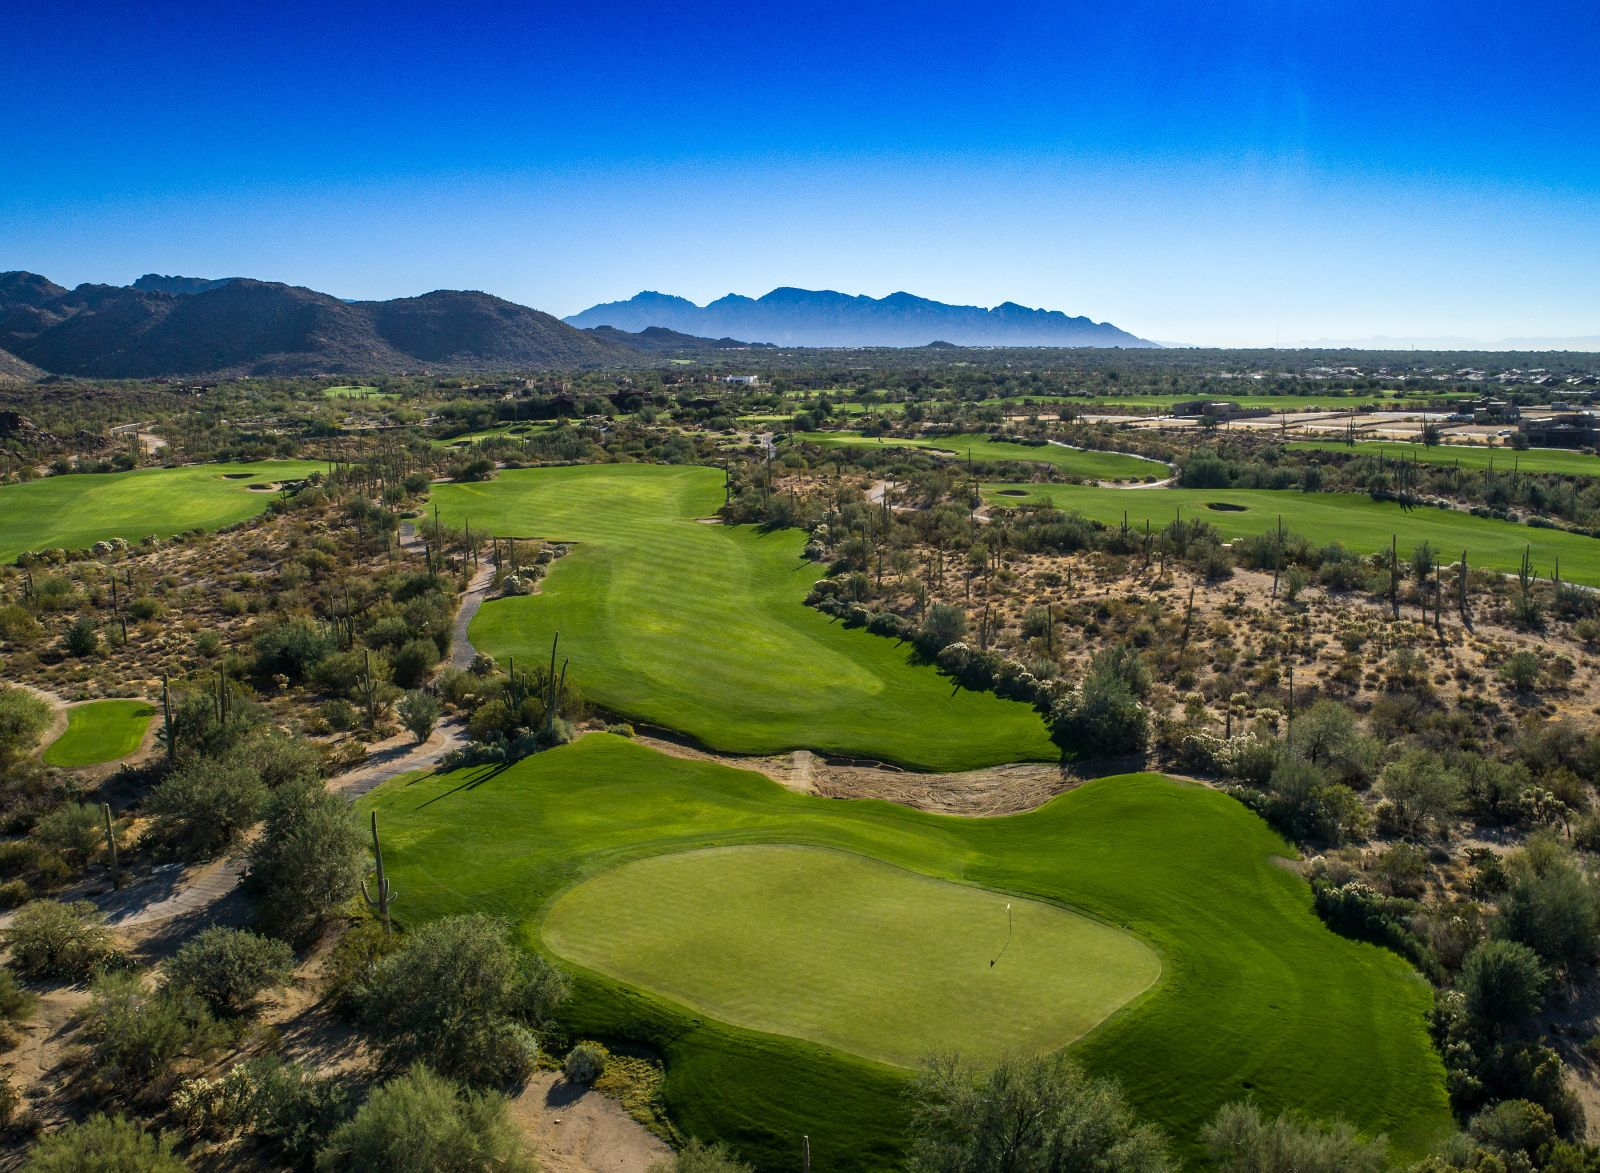 Aerial view of hole 1 on the Tortolita course